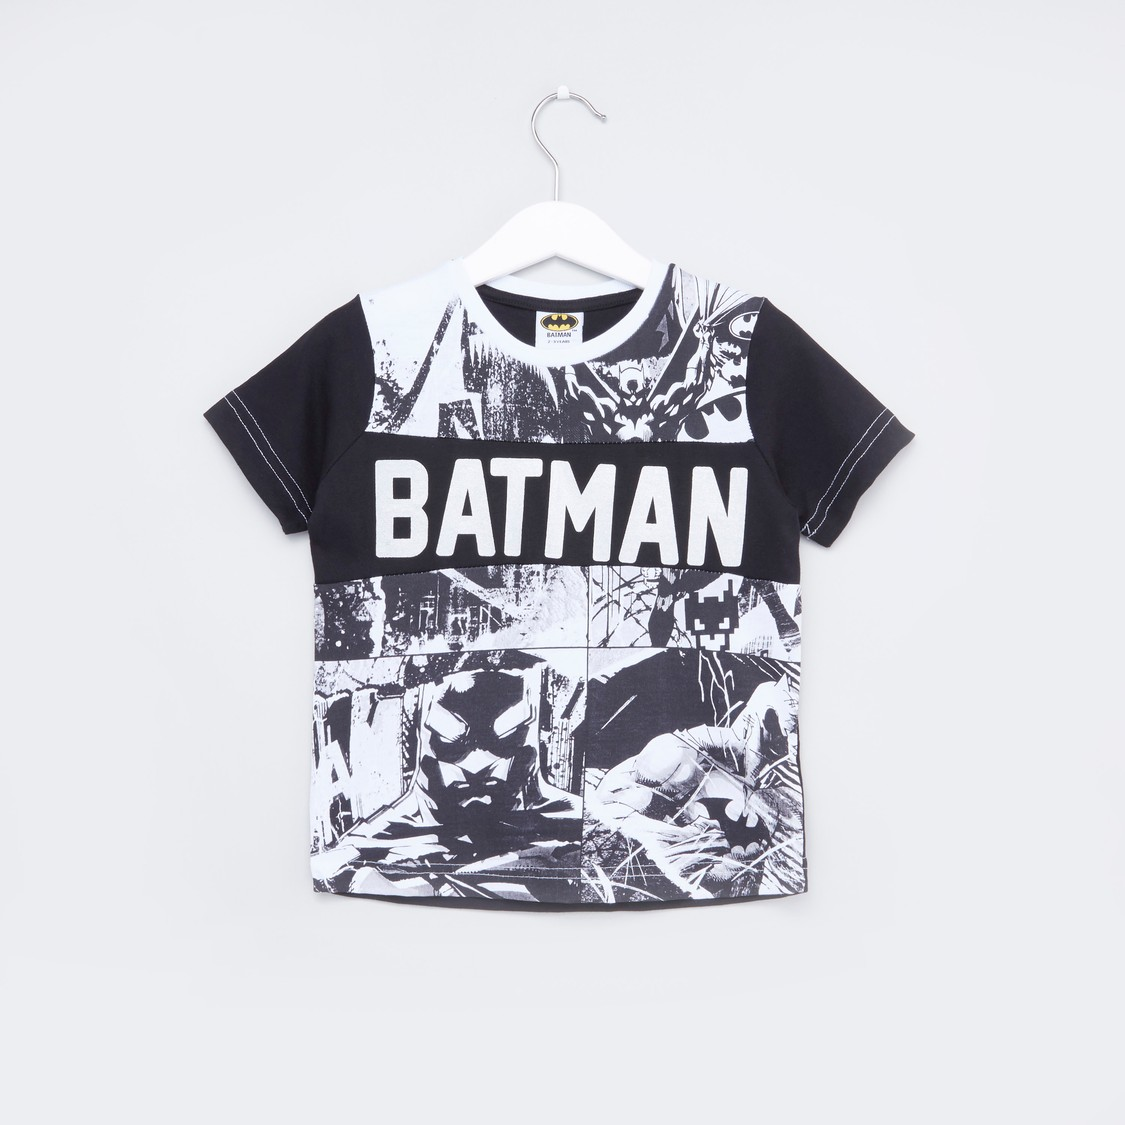 Batman Printed T-shirt with Short Sleeves